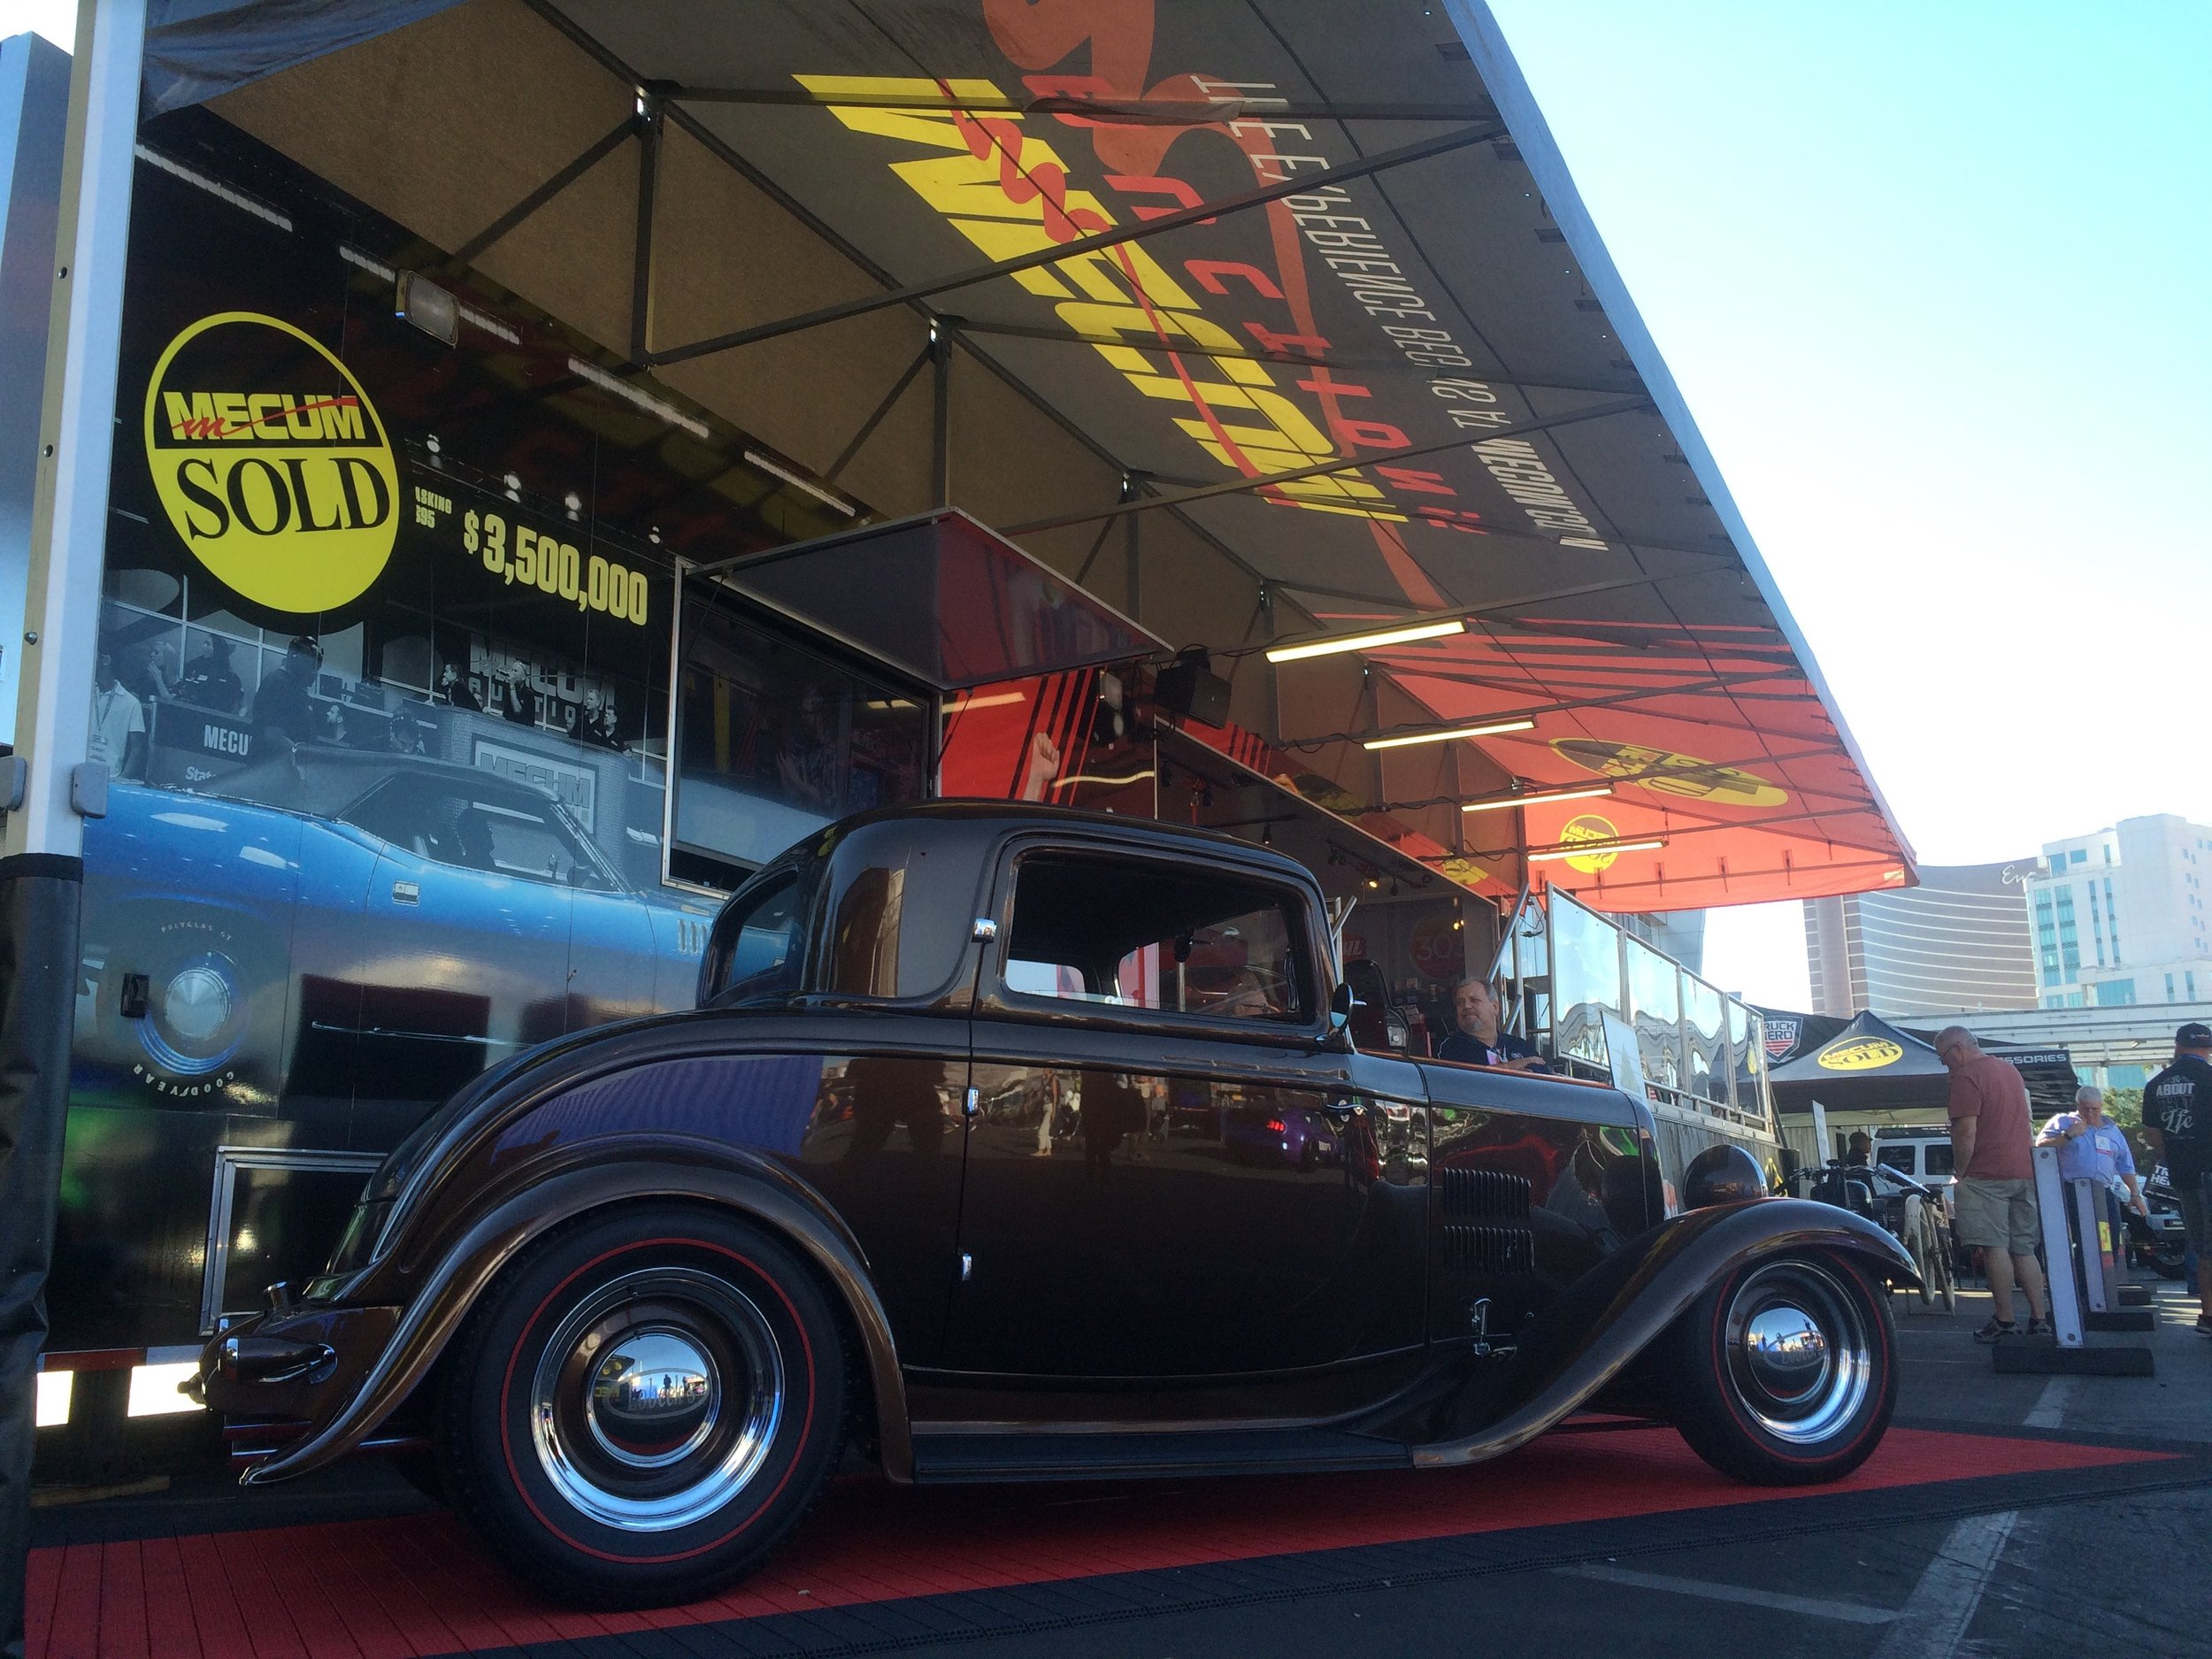 the last lobeck at the Mecum mobile experience at sema 2016